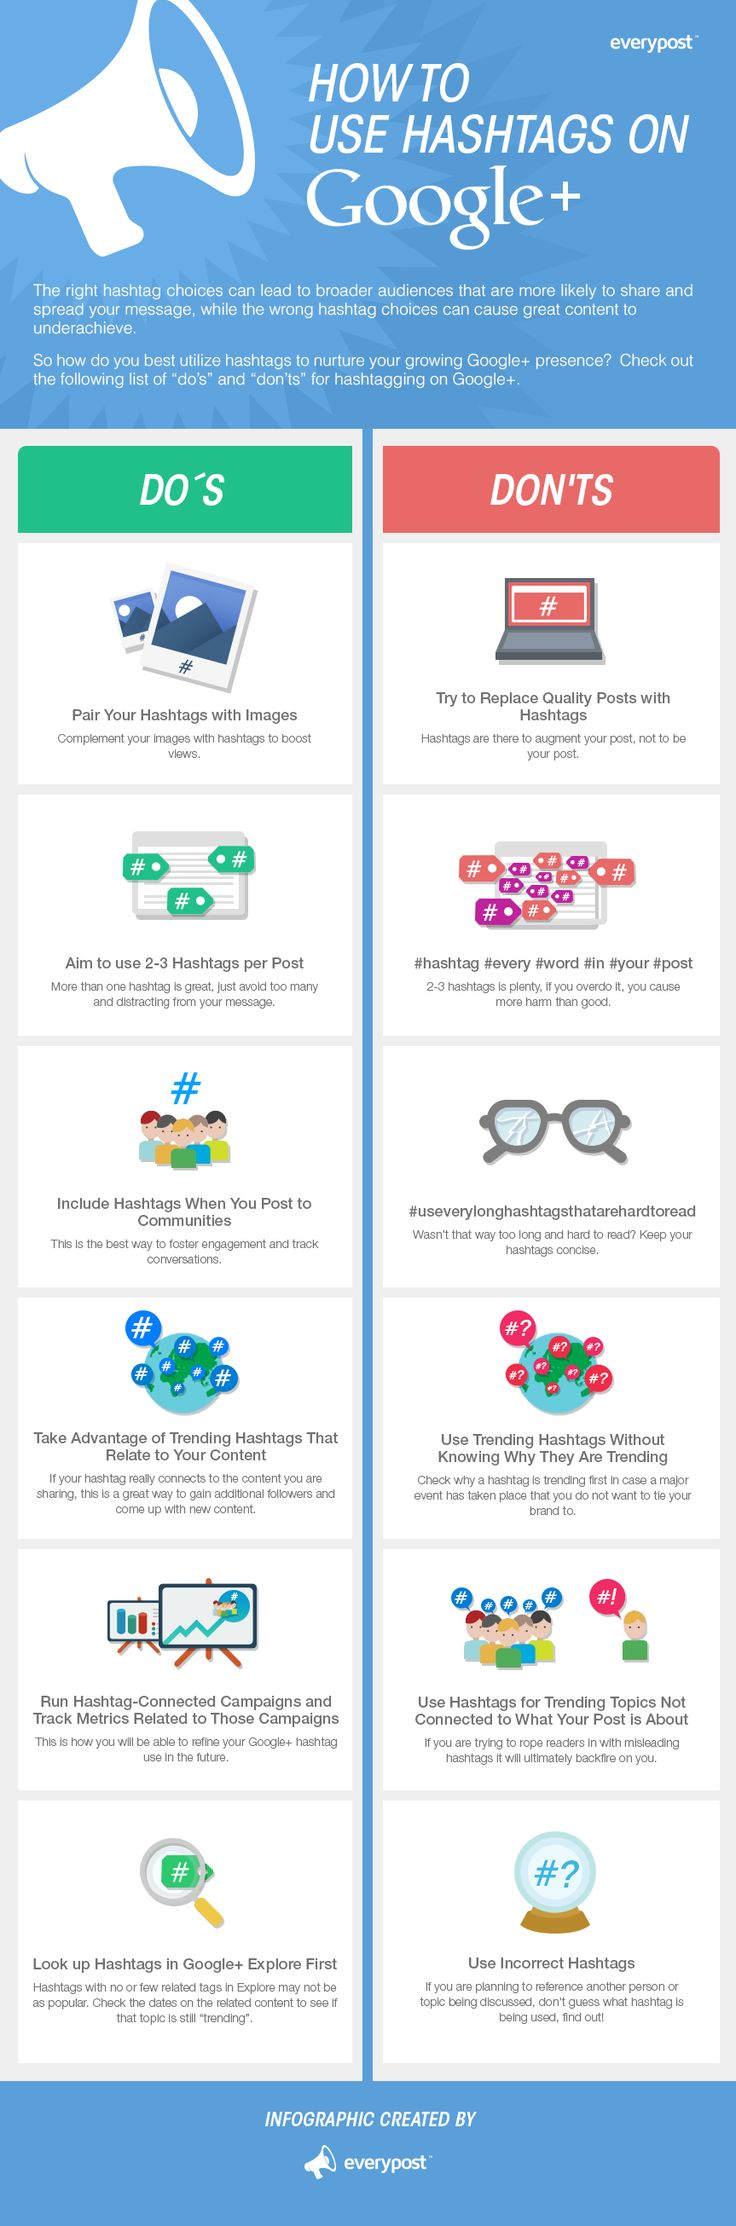 Great overview: How to use Hashtags on Google+   #GooglePlus #socialMedia #infographic